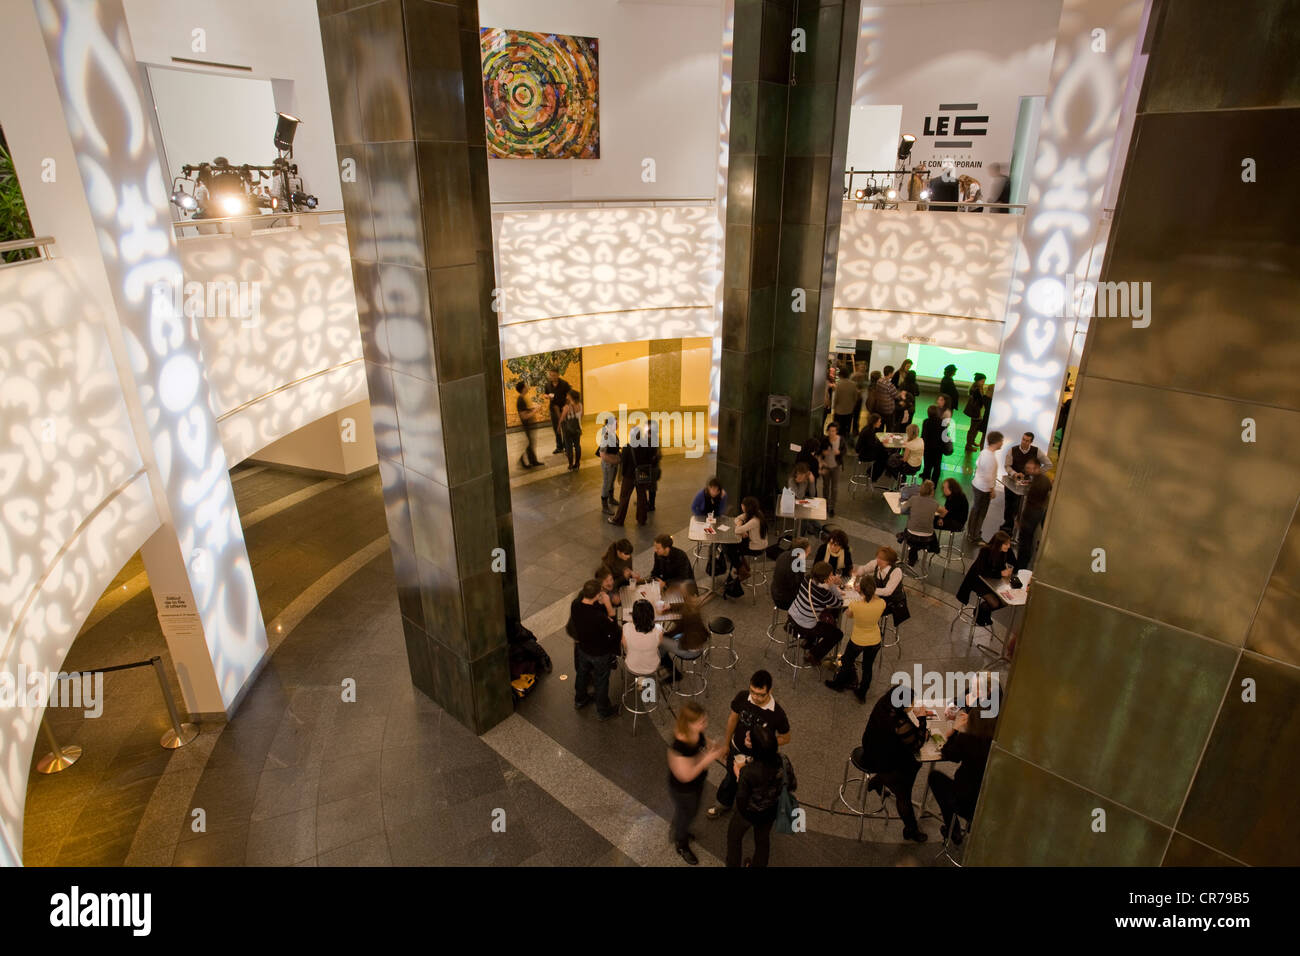 Canada, Quebec, Montreal, museum of contemporary art, MAC, Nocturnes Friday show - Stock Image